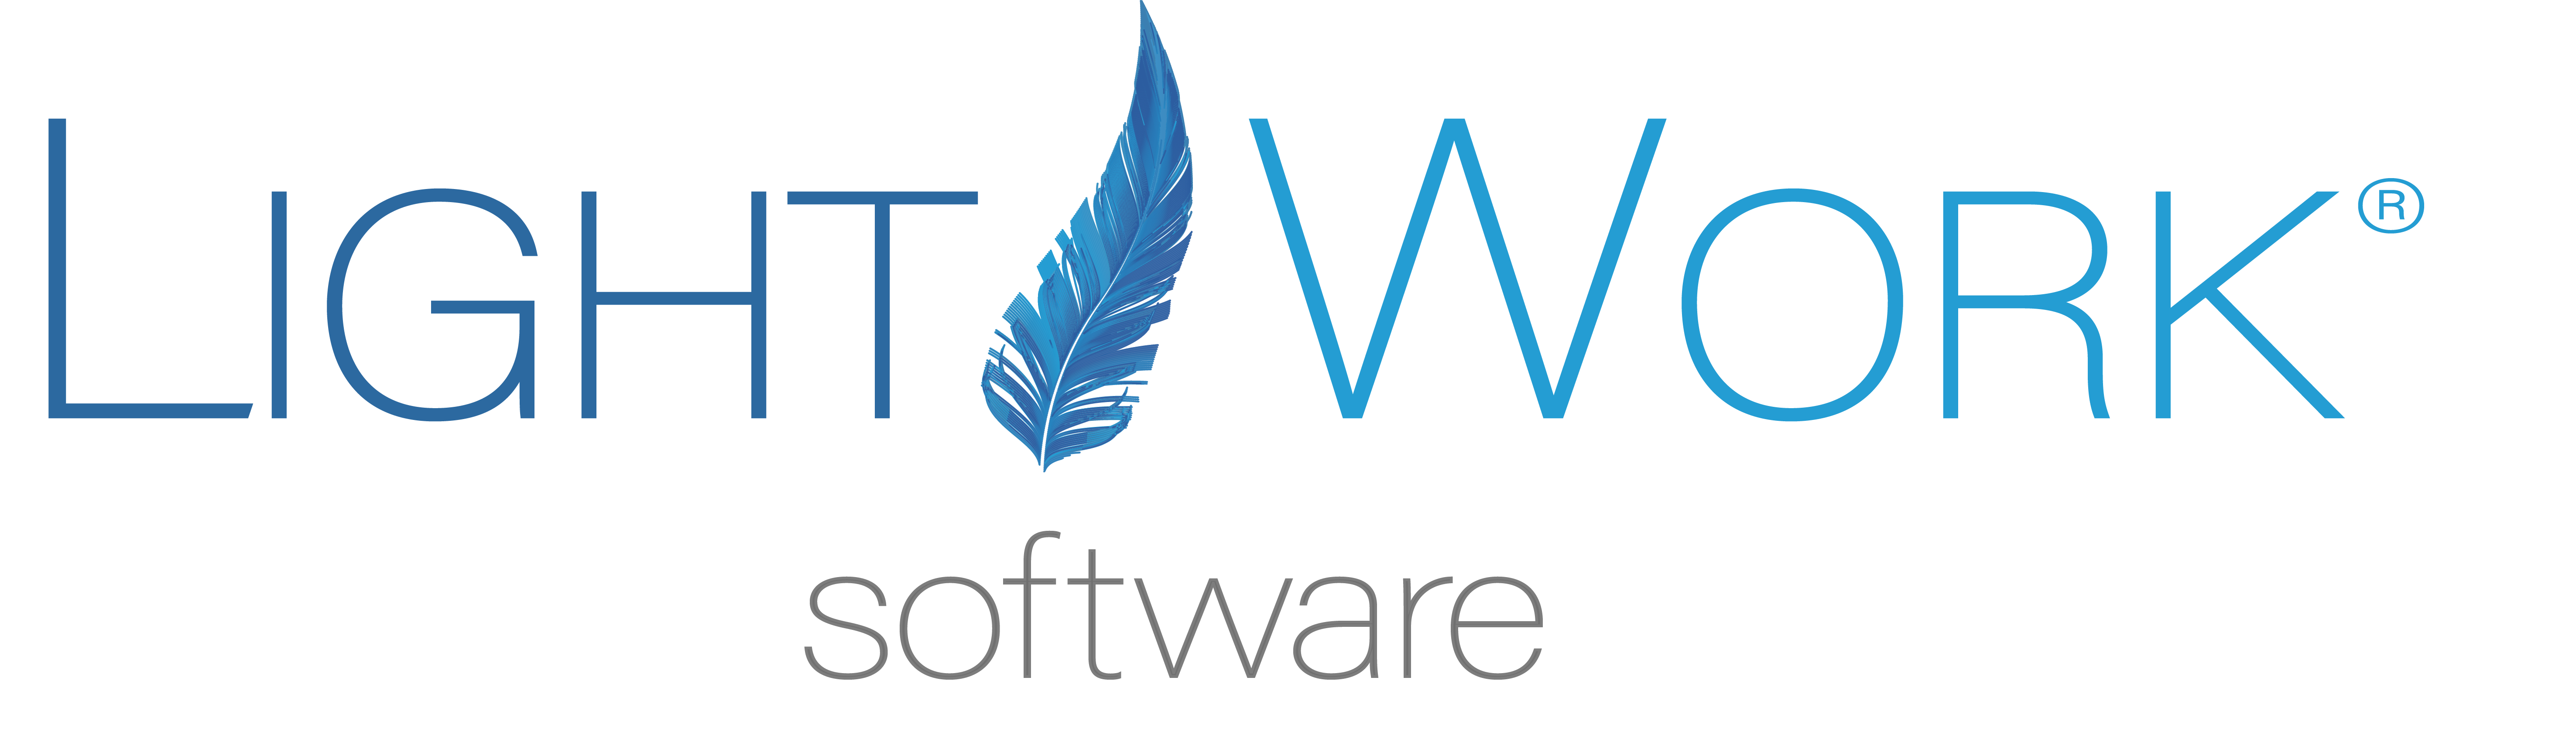 lightwork_software_logo_registedtm_transparent